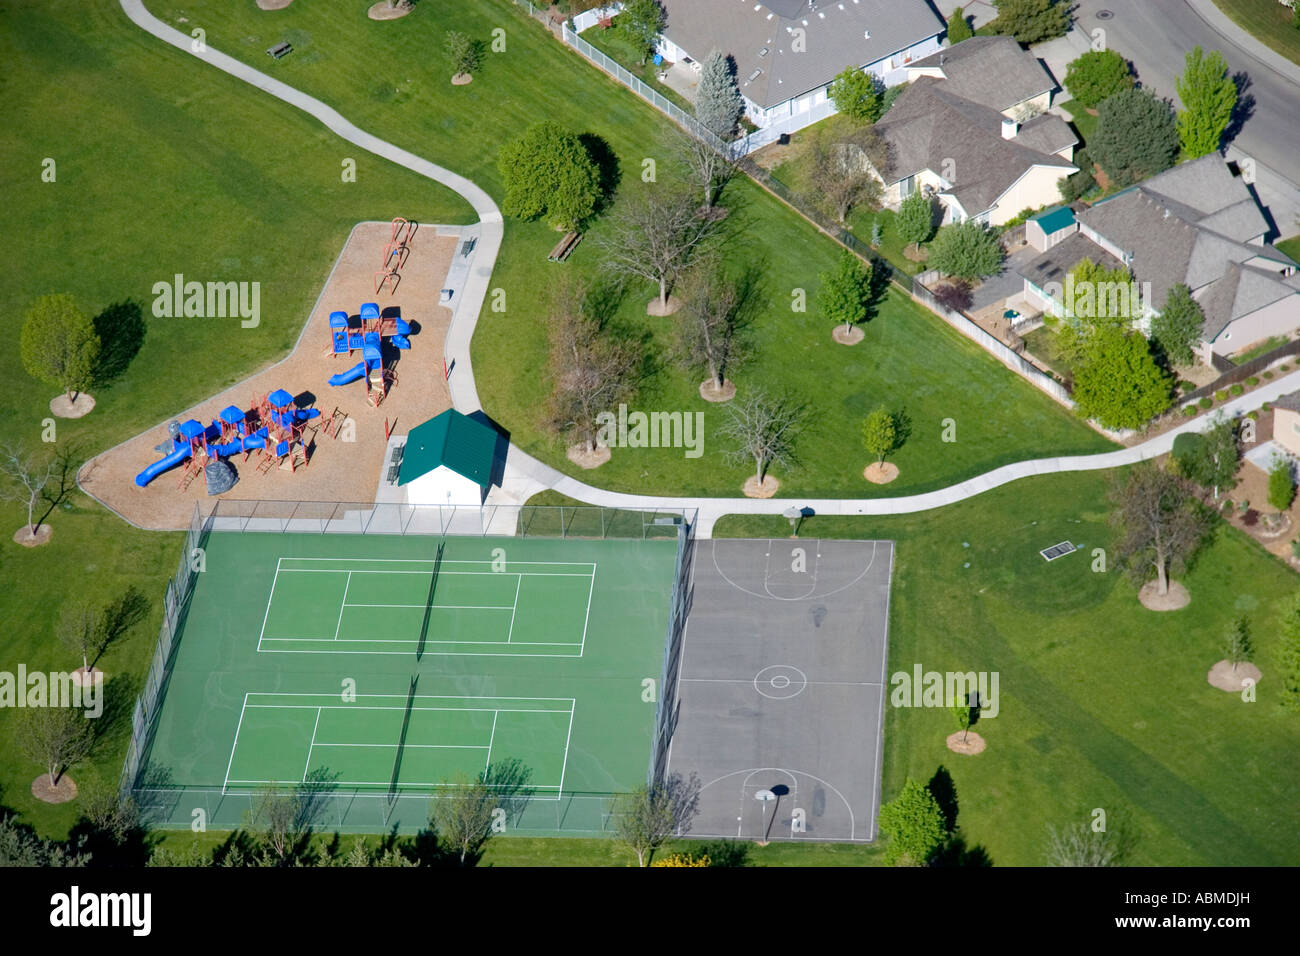 Aerial View Of A Park With Playground Equipment Tennis